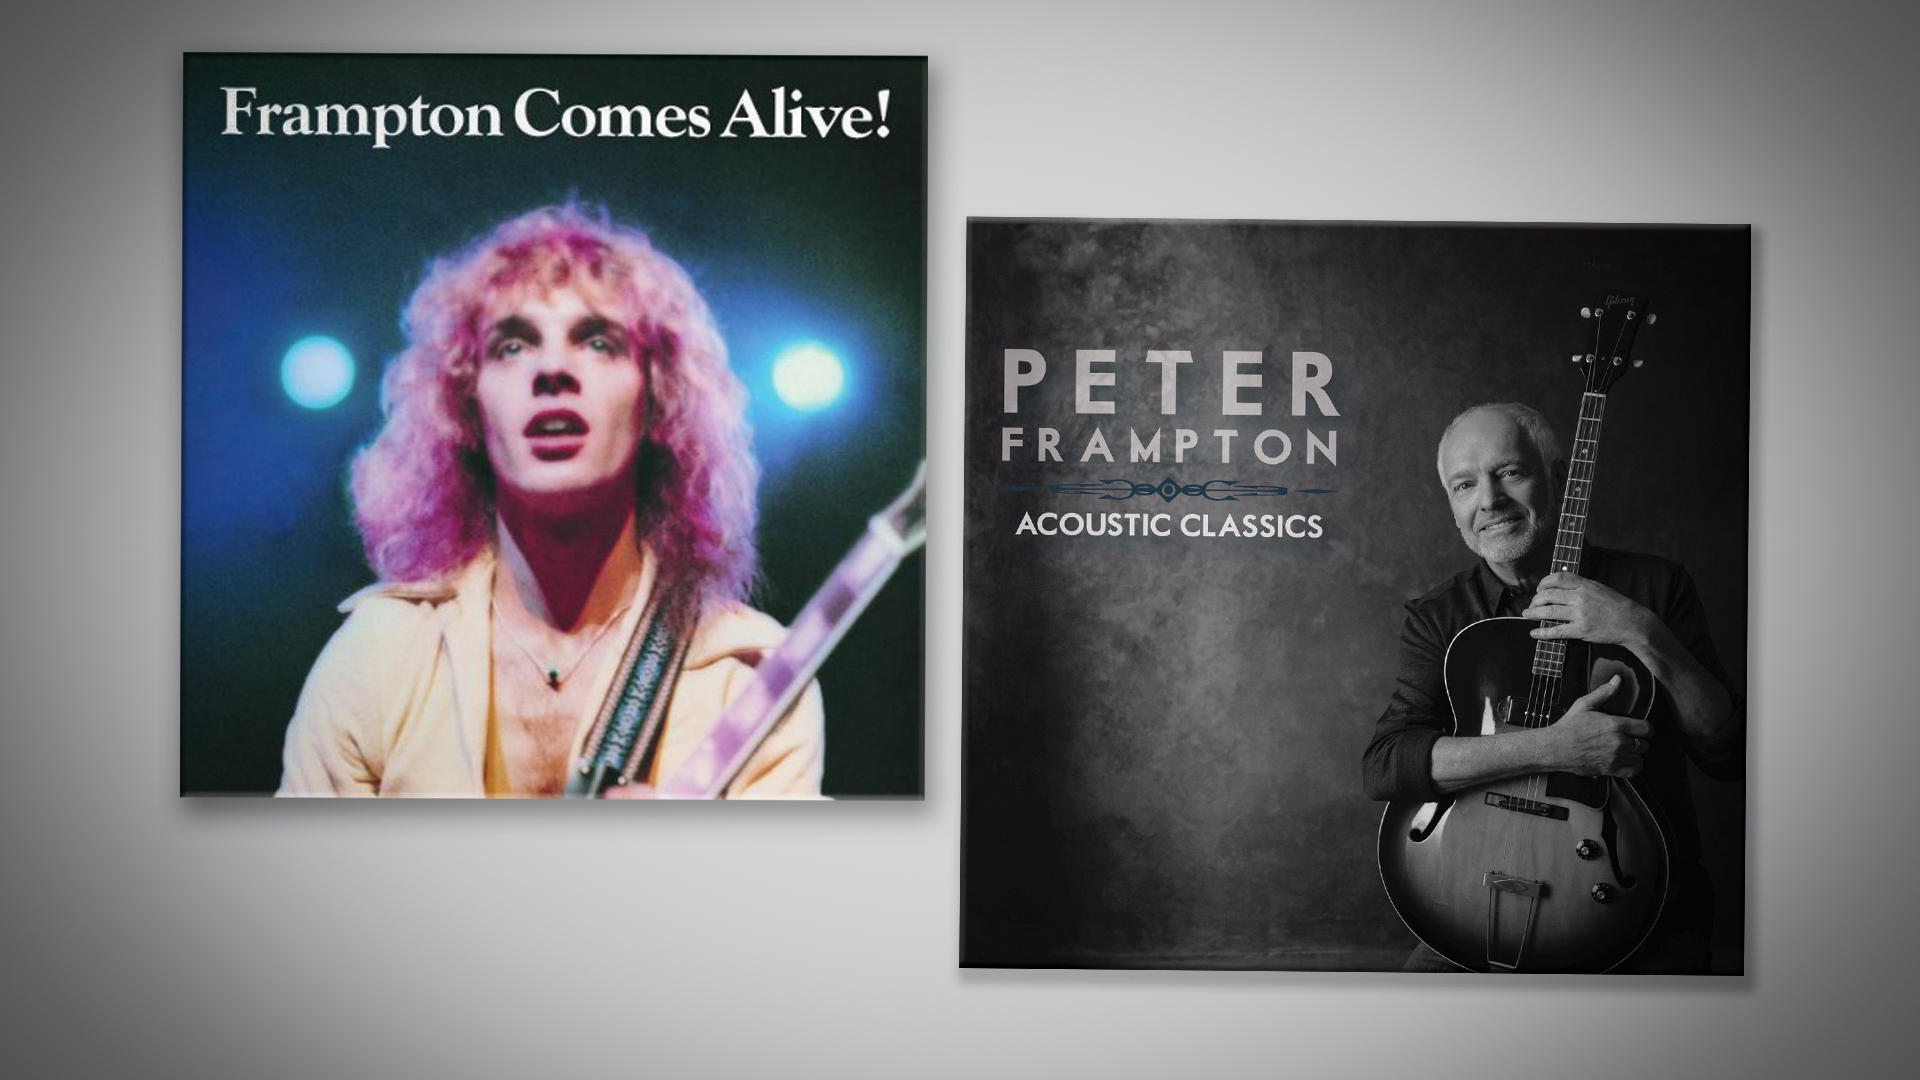 Peter Frampton Comes alive then and now